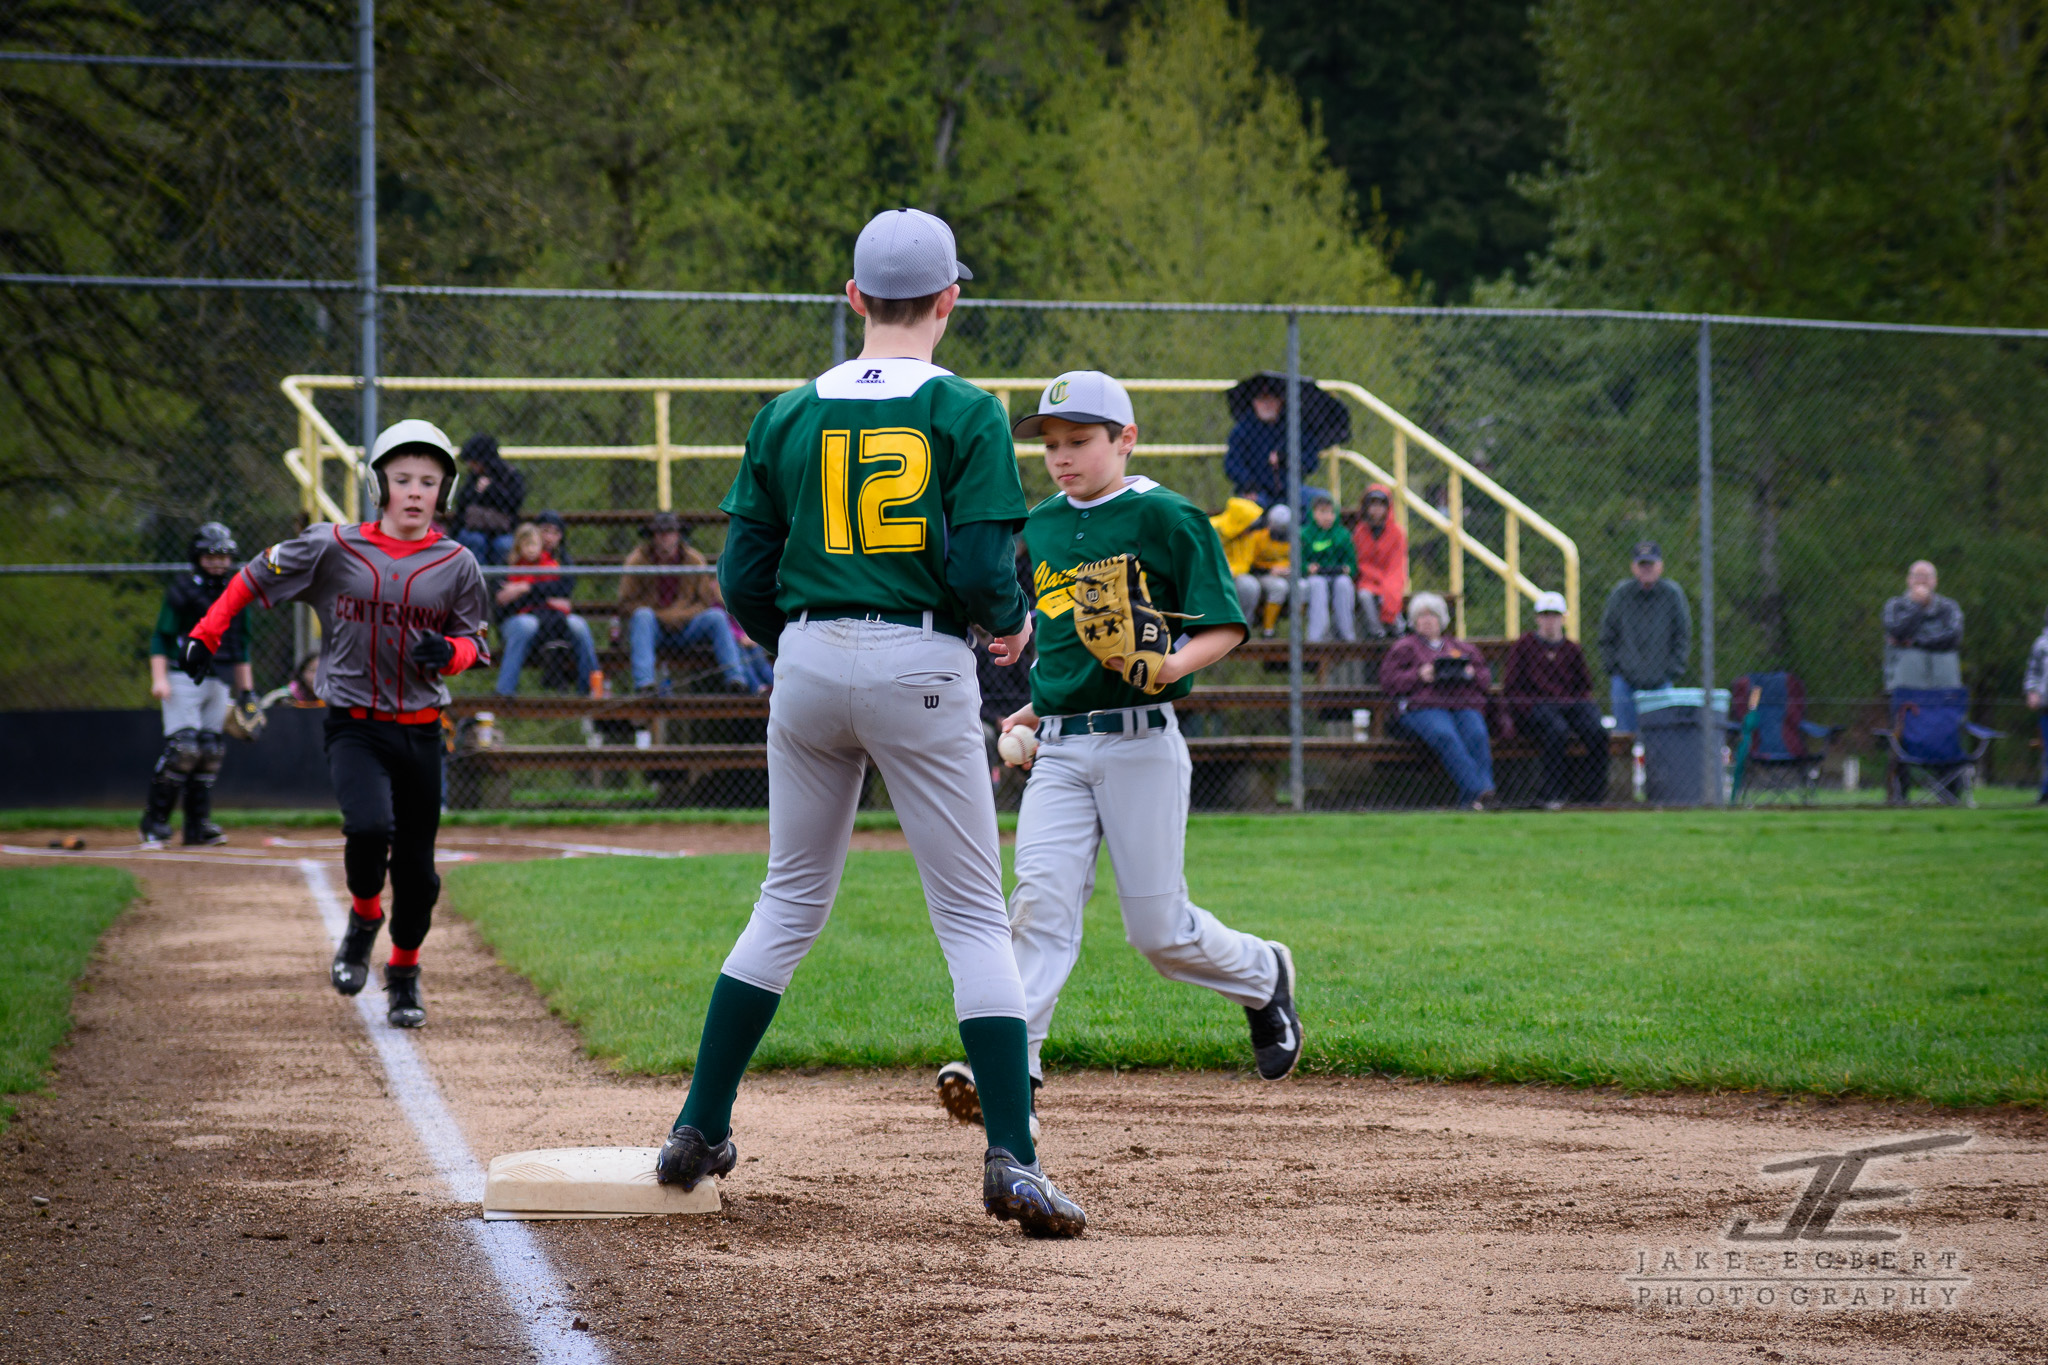 FB - 2014-04-05 - GreenSox - 19329.jpg